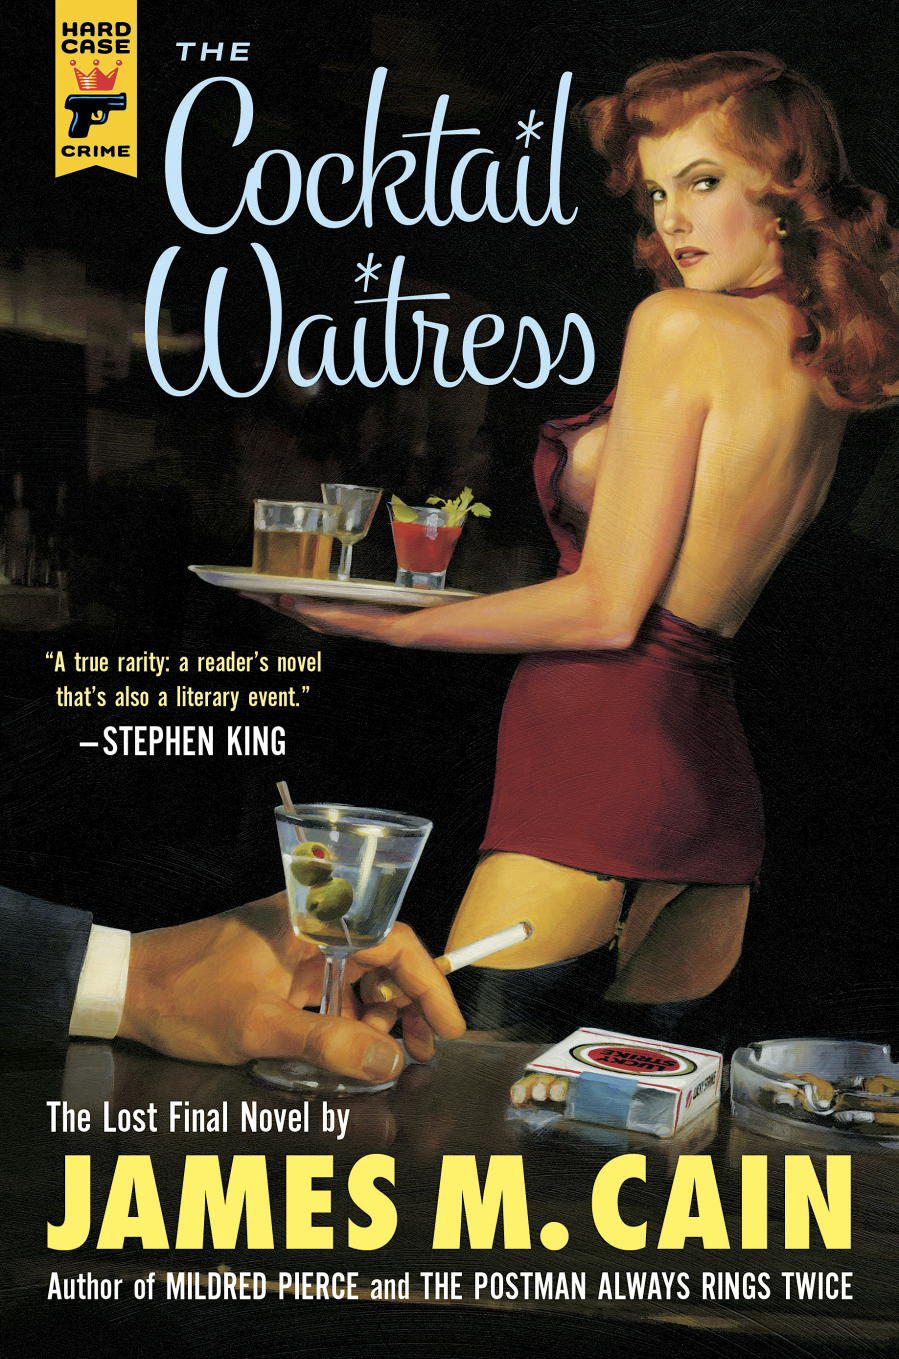 109-thecocktailwaitress-fixed.jpg